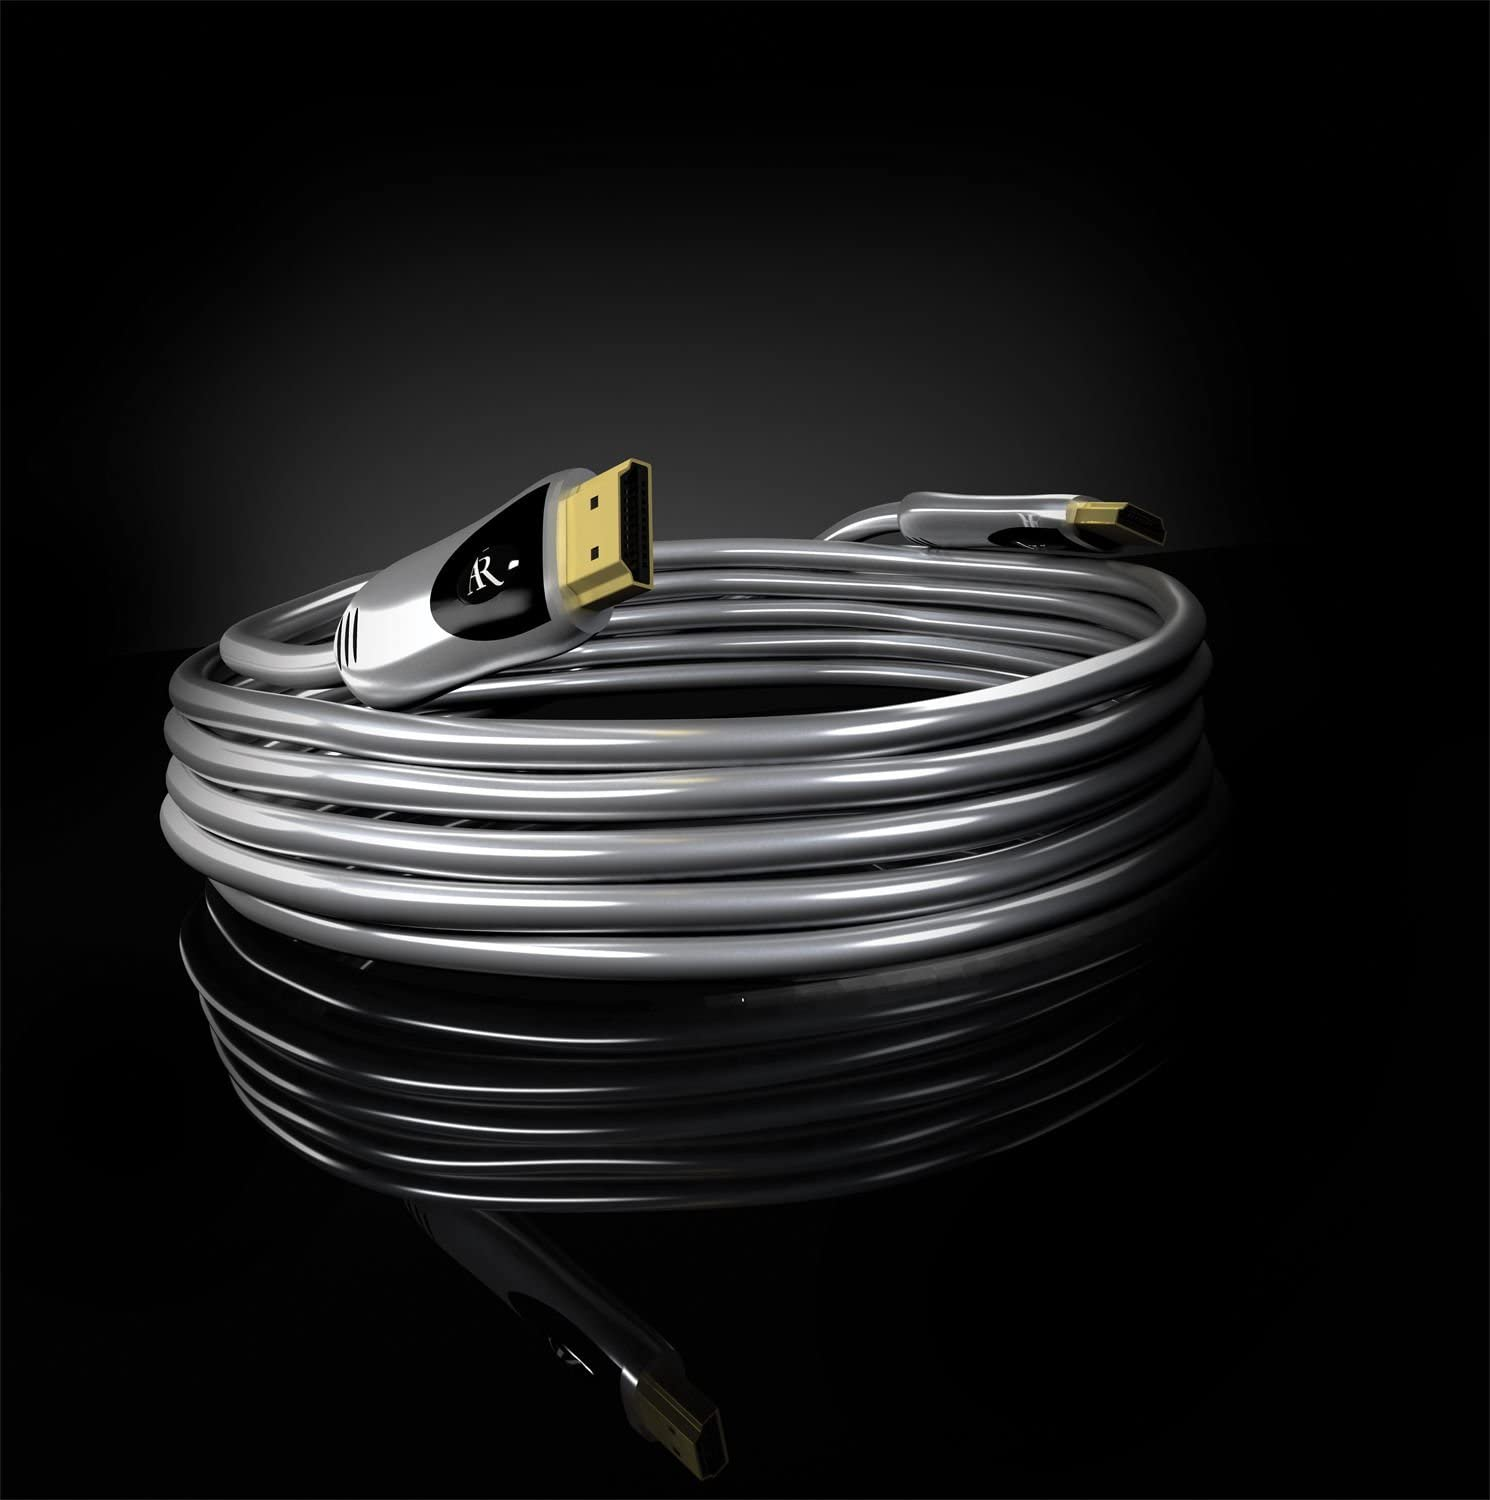 6 Feet Acoustic Research ARGH6 Gold Series High Speed HDMI Cable Discontinued by Manufacturer